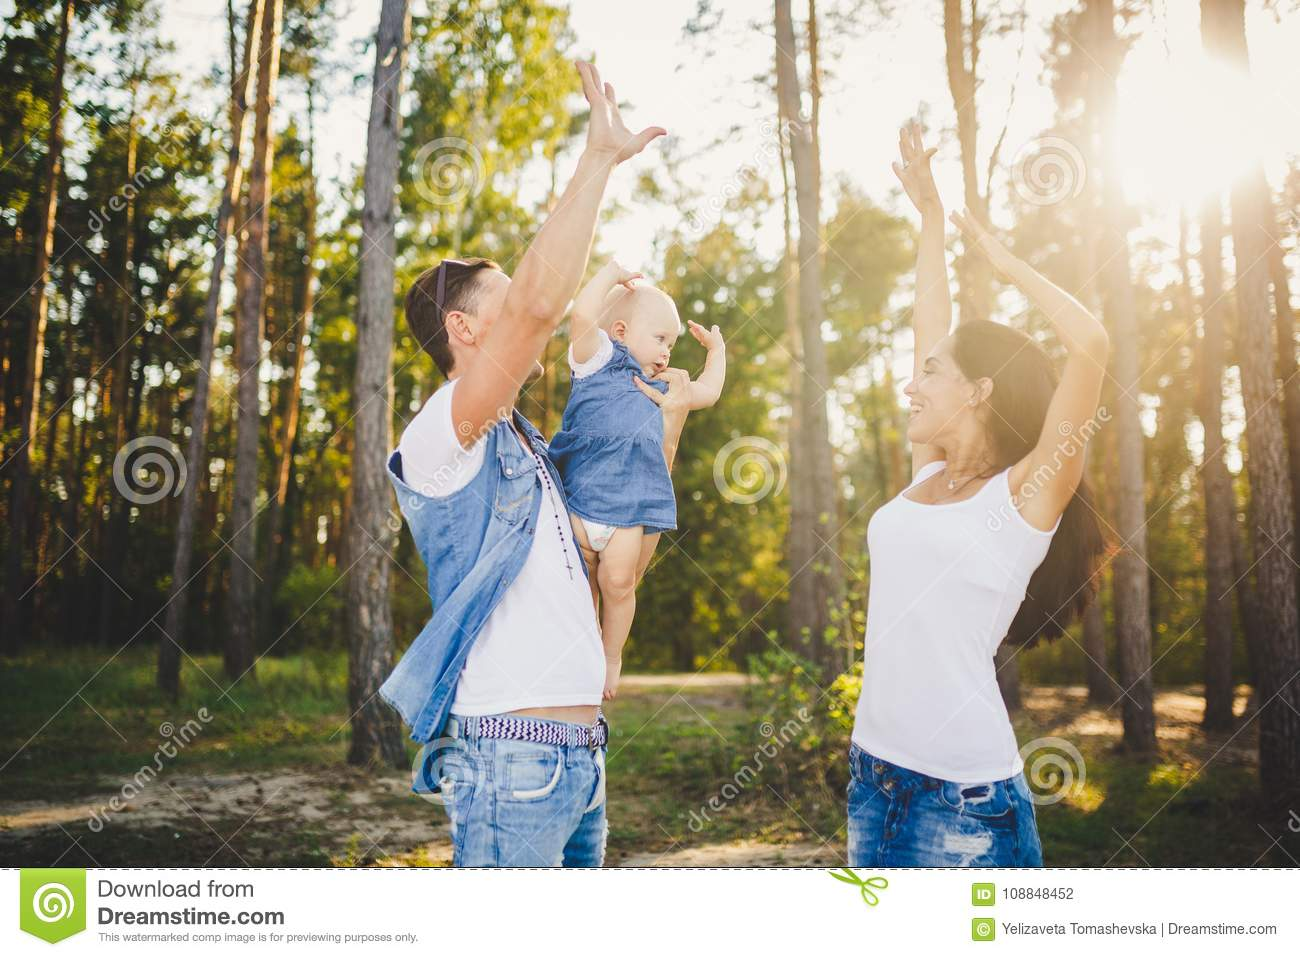 Theme family vacation in the forest. A small child has daughter with daddy on shoulders, mother stands next to her raised arms and